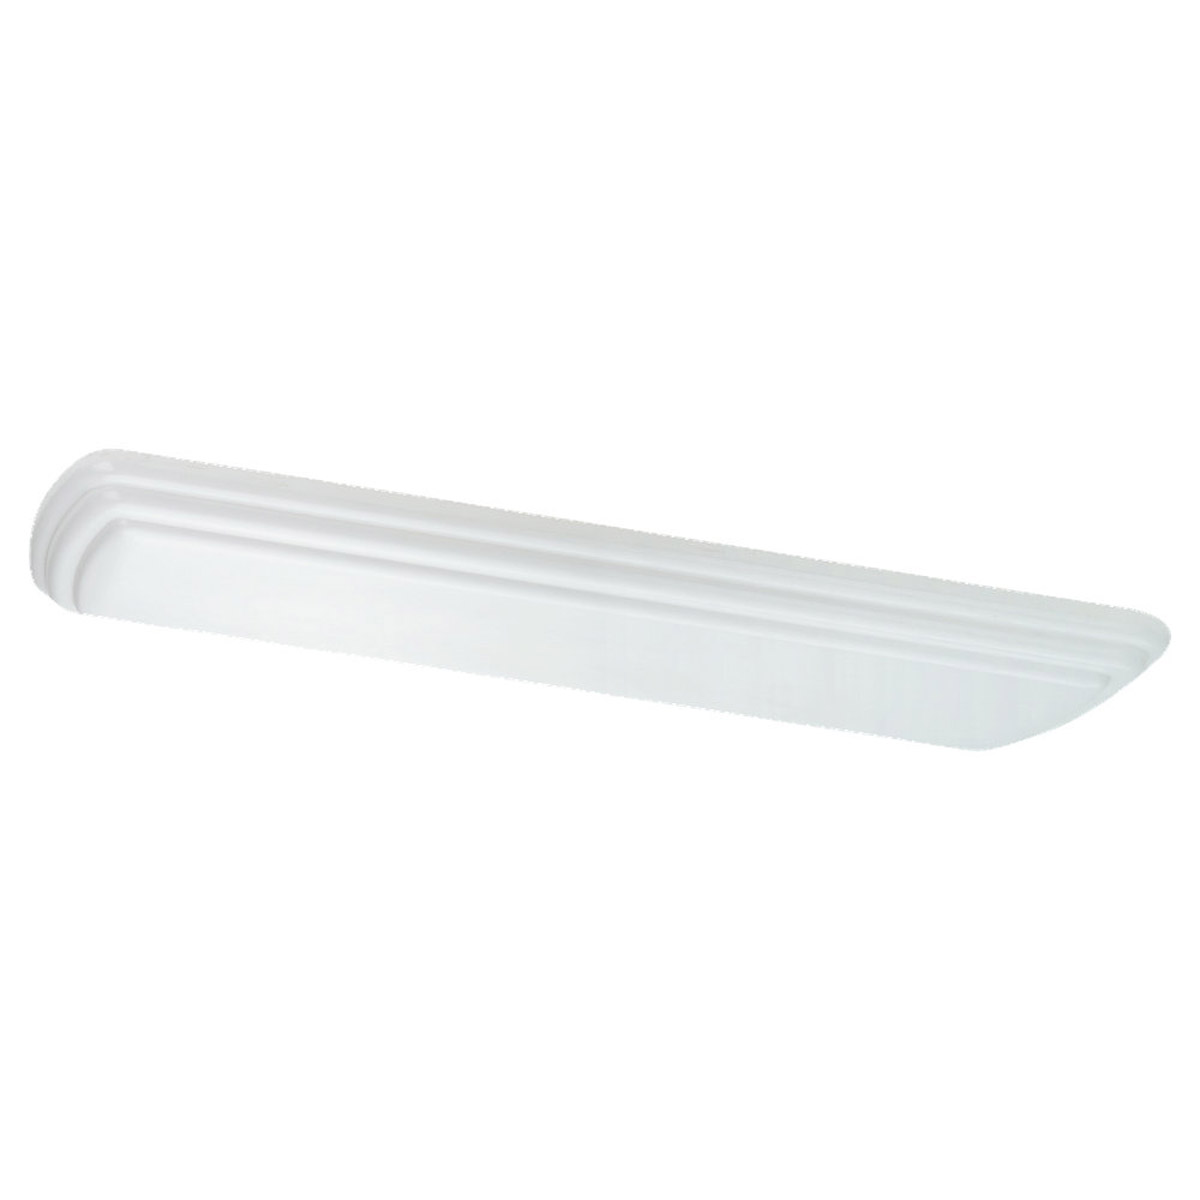 Sea Gull Lighting Farley 4 Light Flush Mount in White 5915LE-15